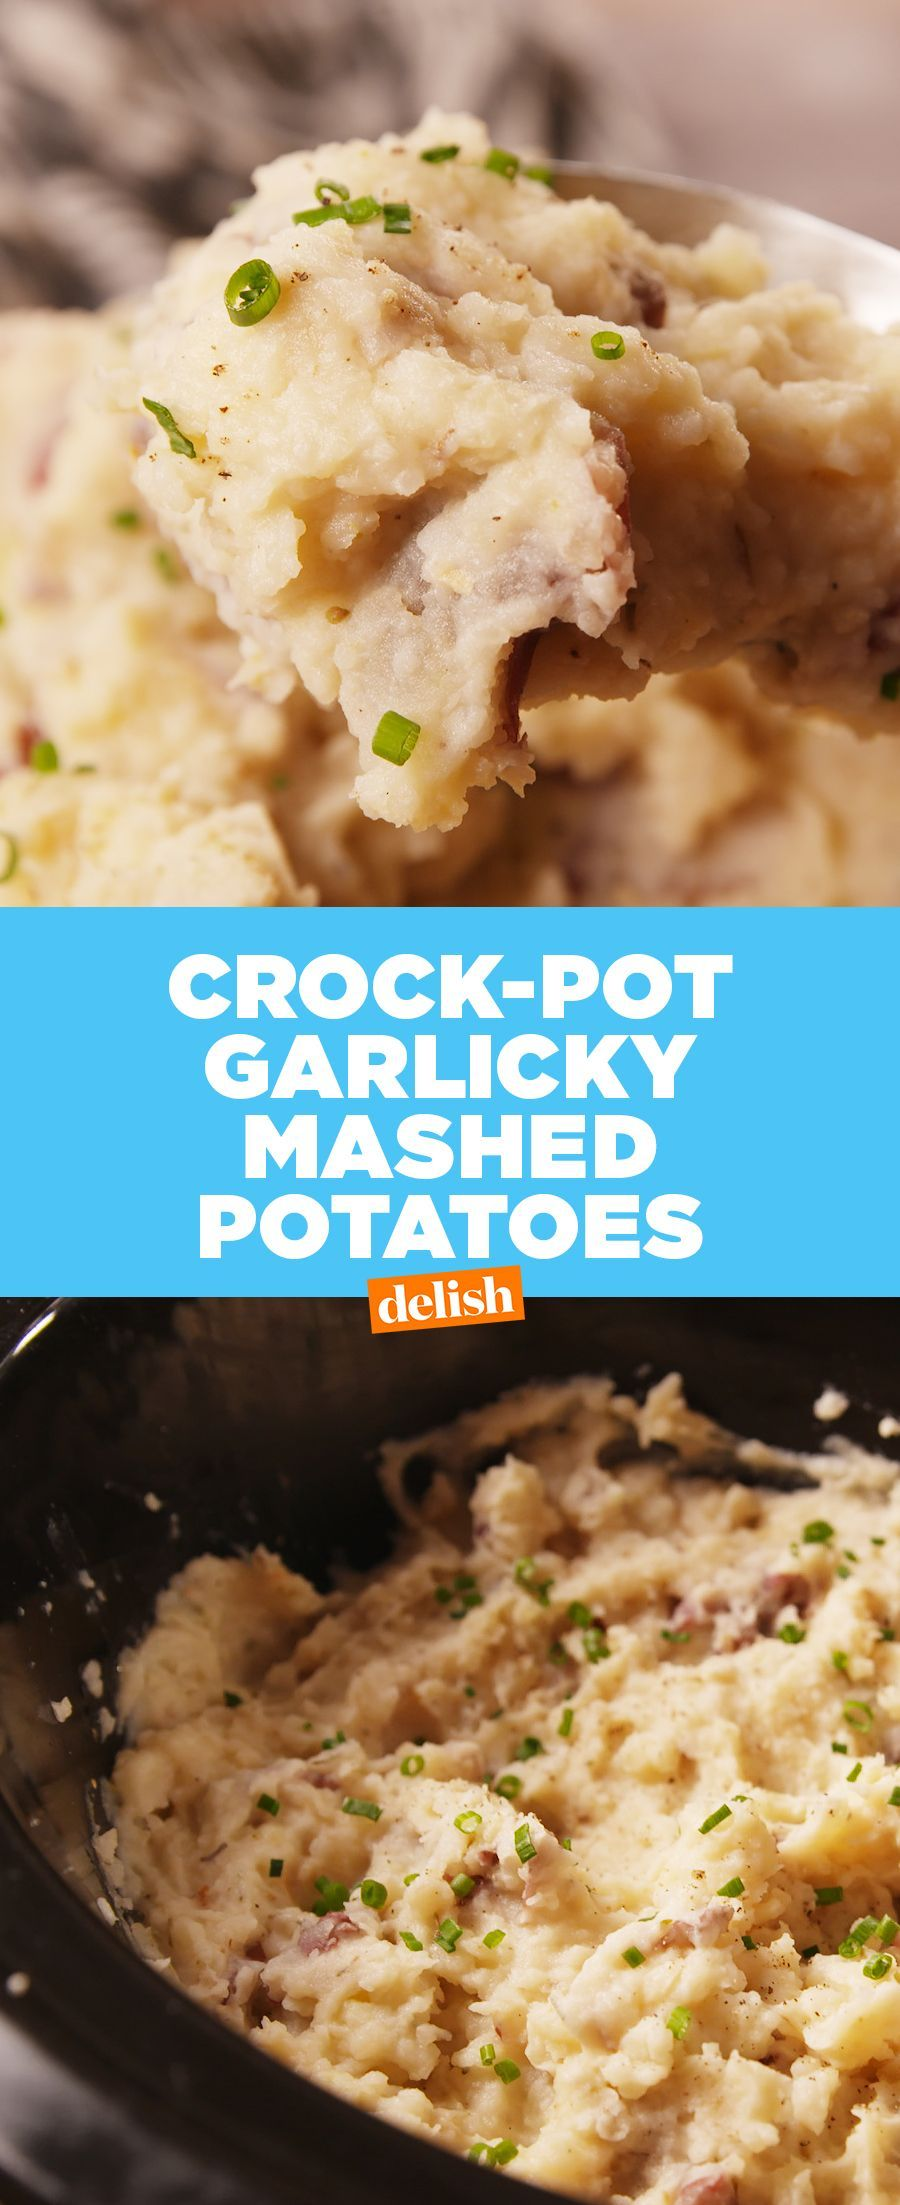 Slow-Cooker Garlicky Mashed Potatoes Are Here To Save Thanksgiving #crockpotmeals